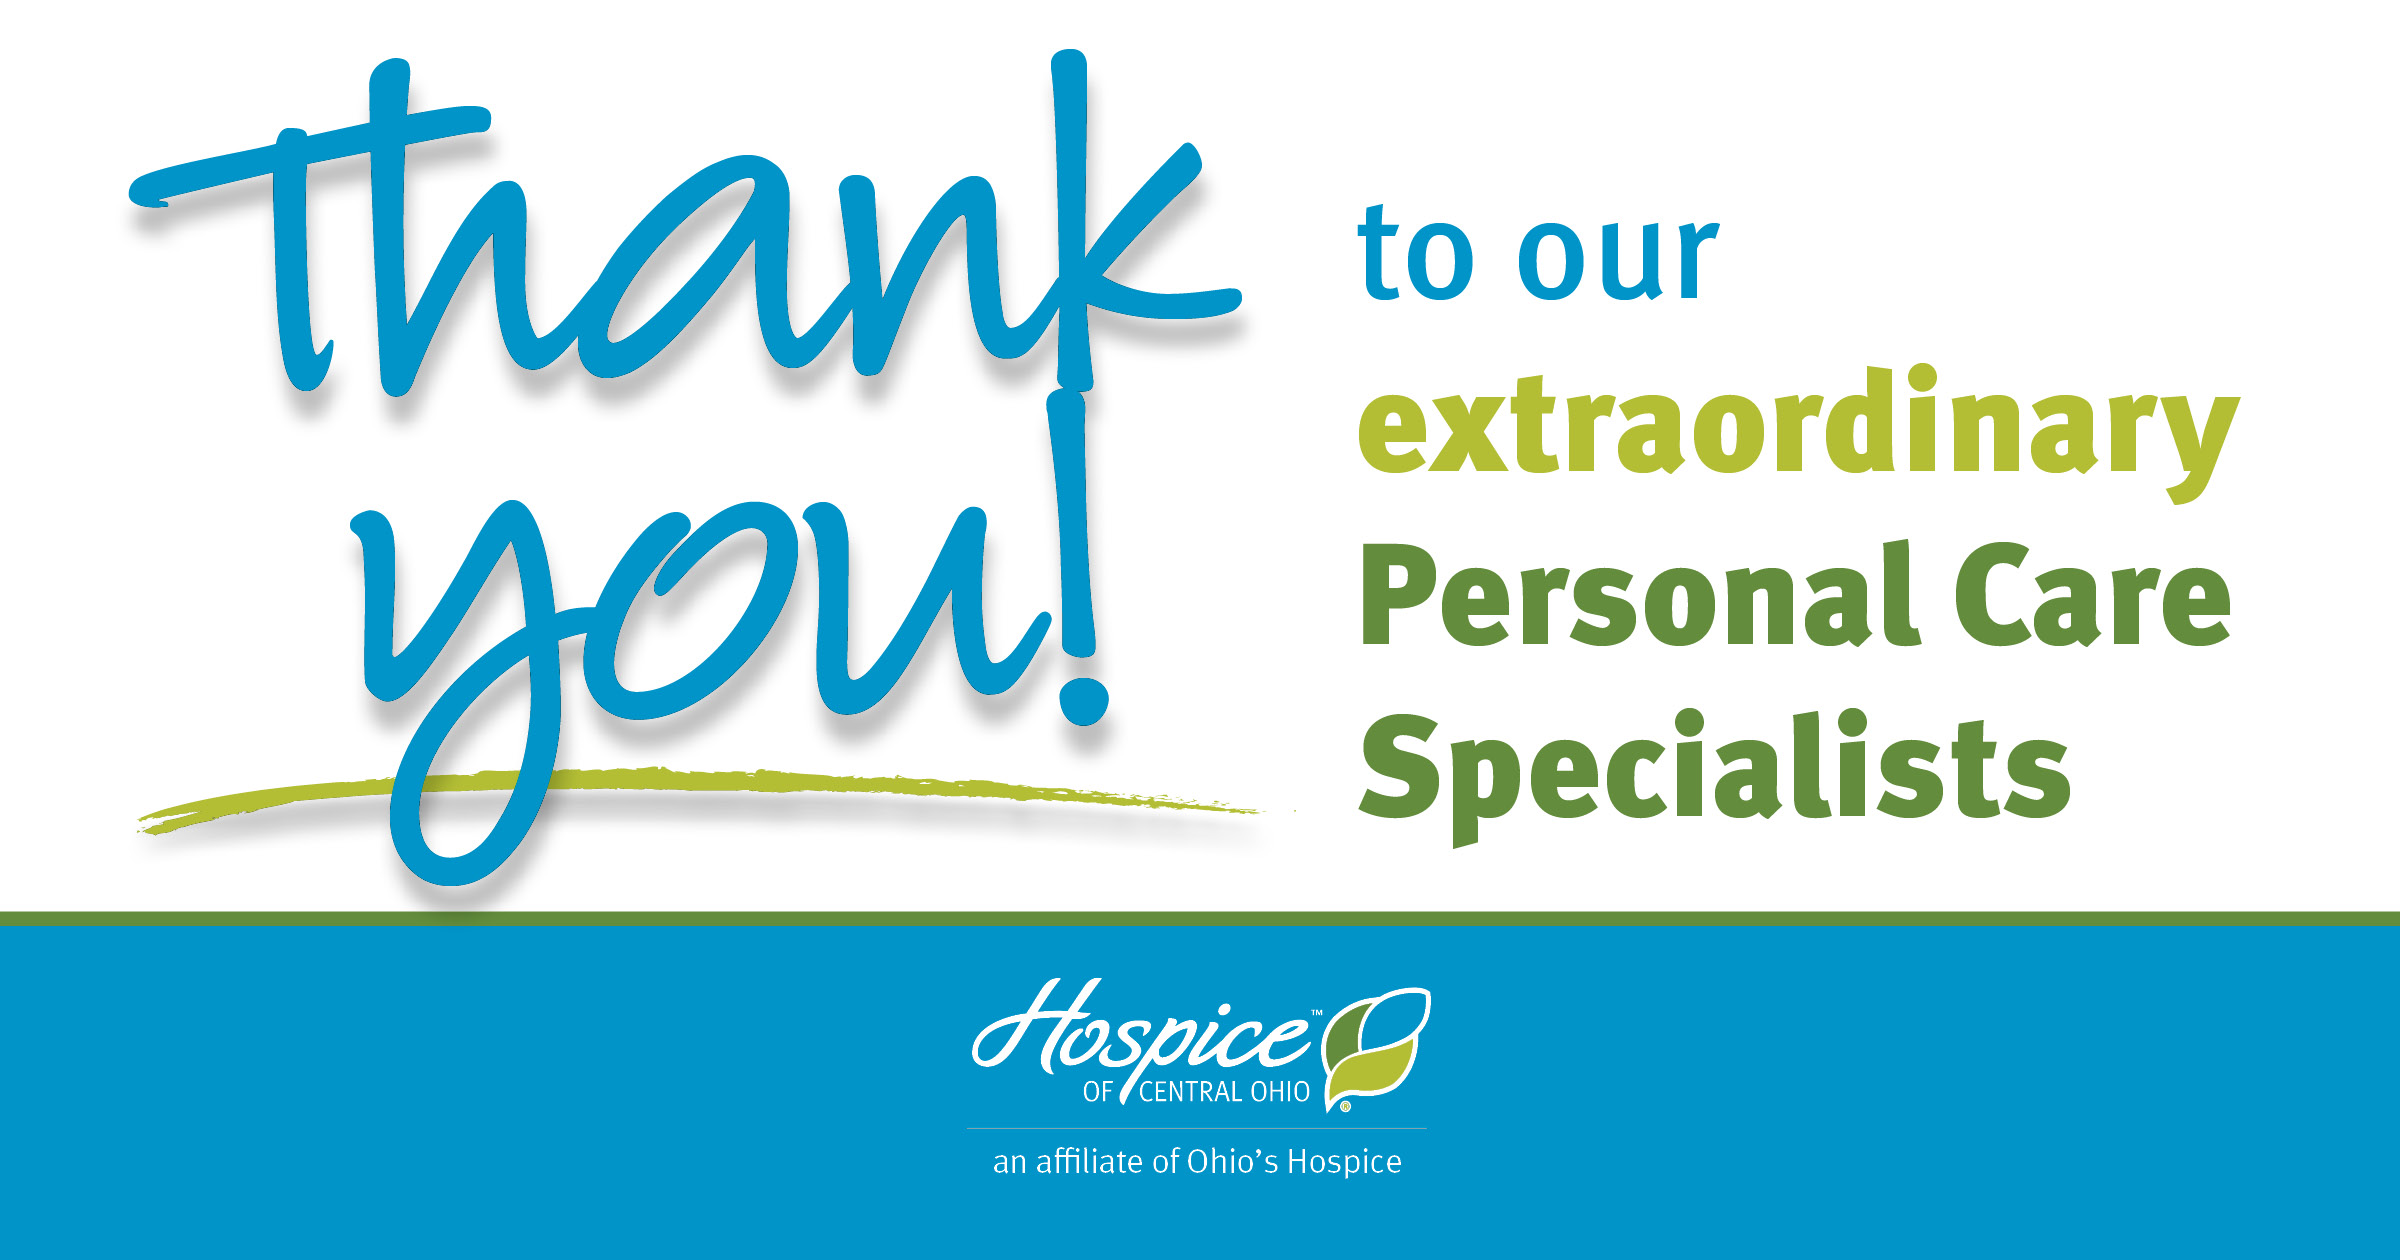 Thank You To Our Extraordinary Personal Care Specialists!